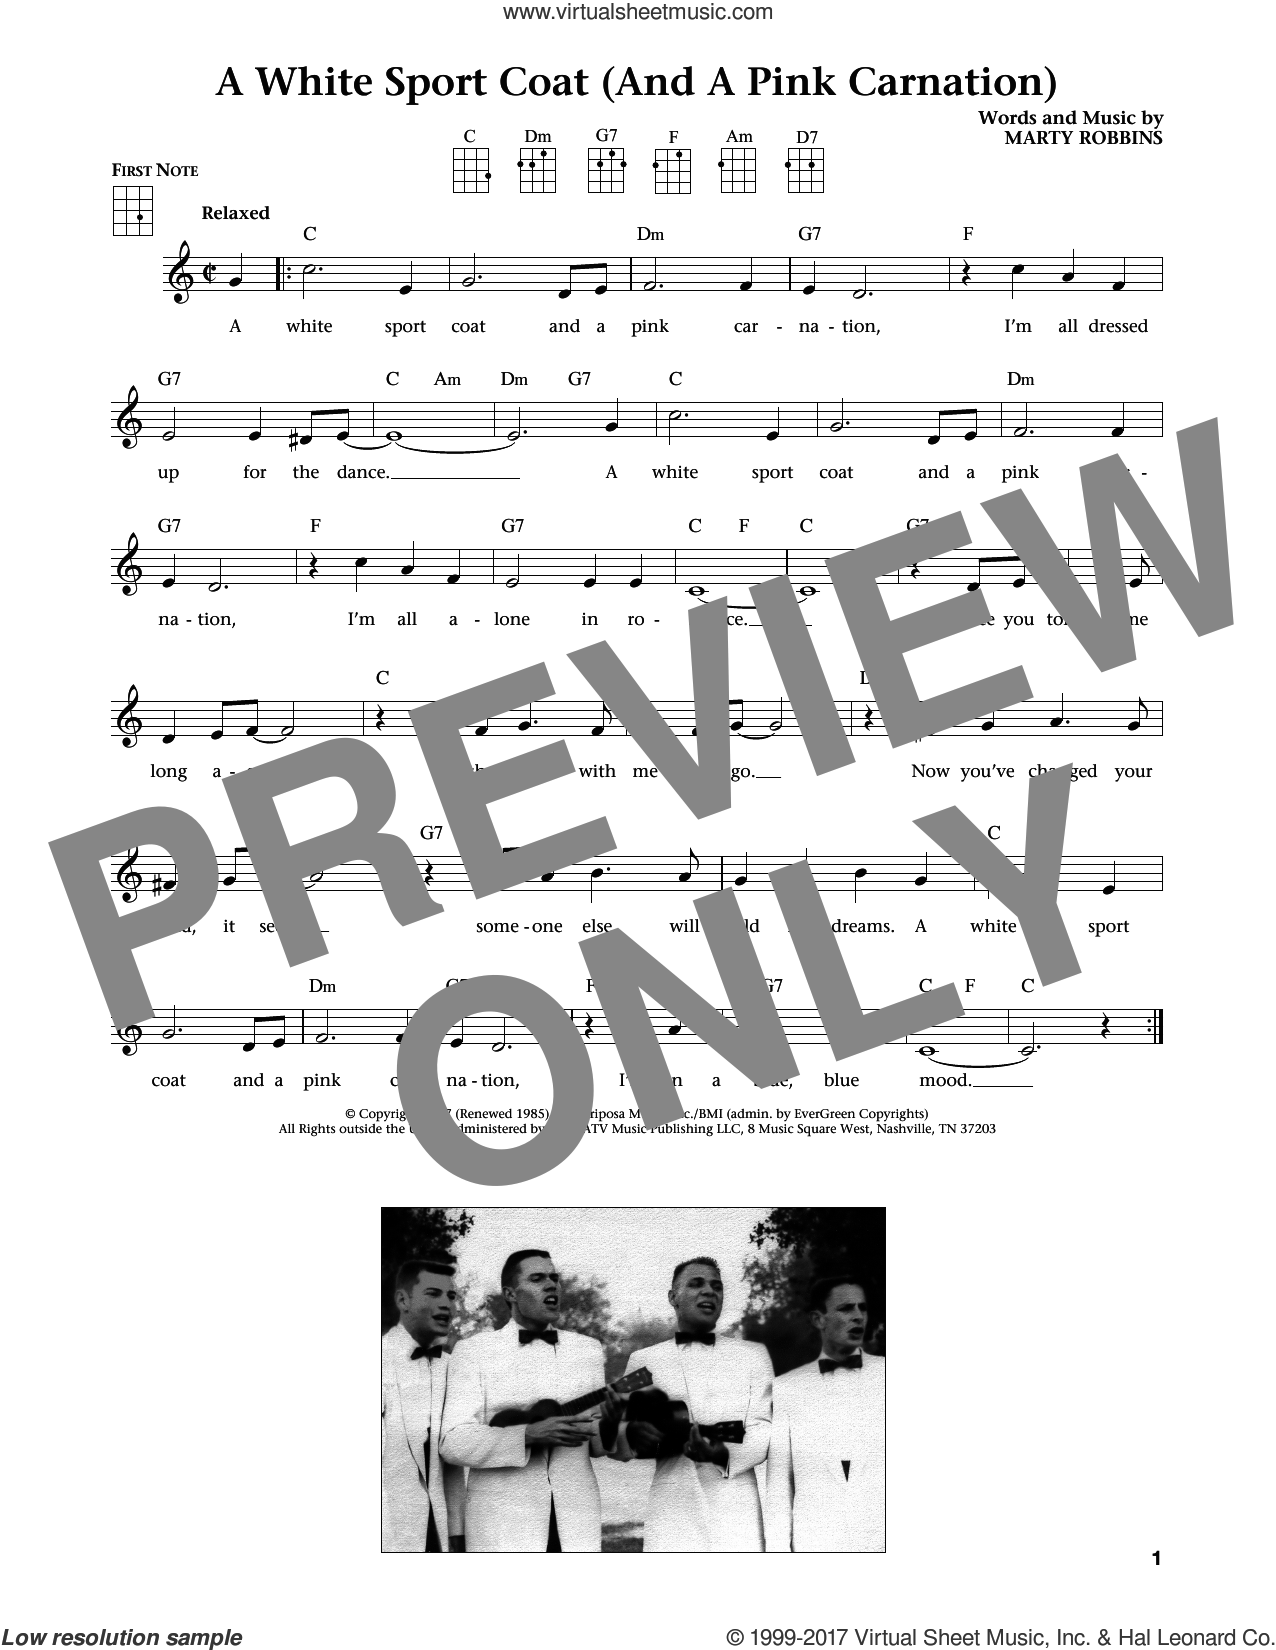 A White Sport Coat (And A Pink Carnation) sheet music for ukulele by Marty Robbins, Jim Beloff and Liz Beloff, intermediate